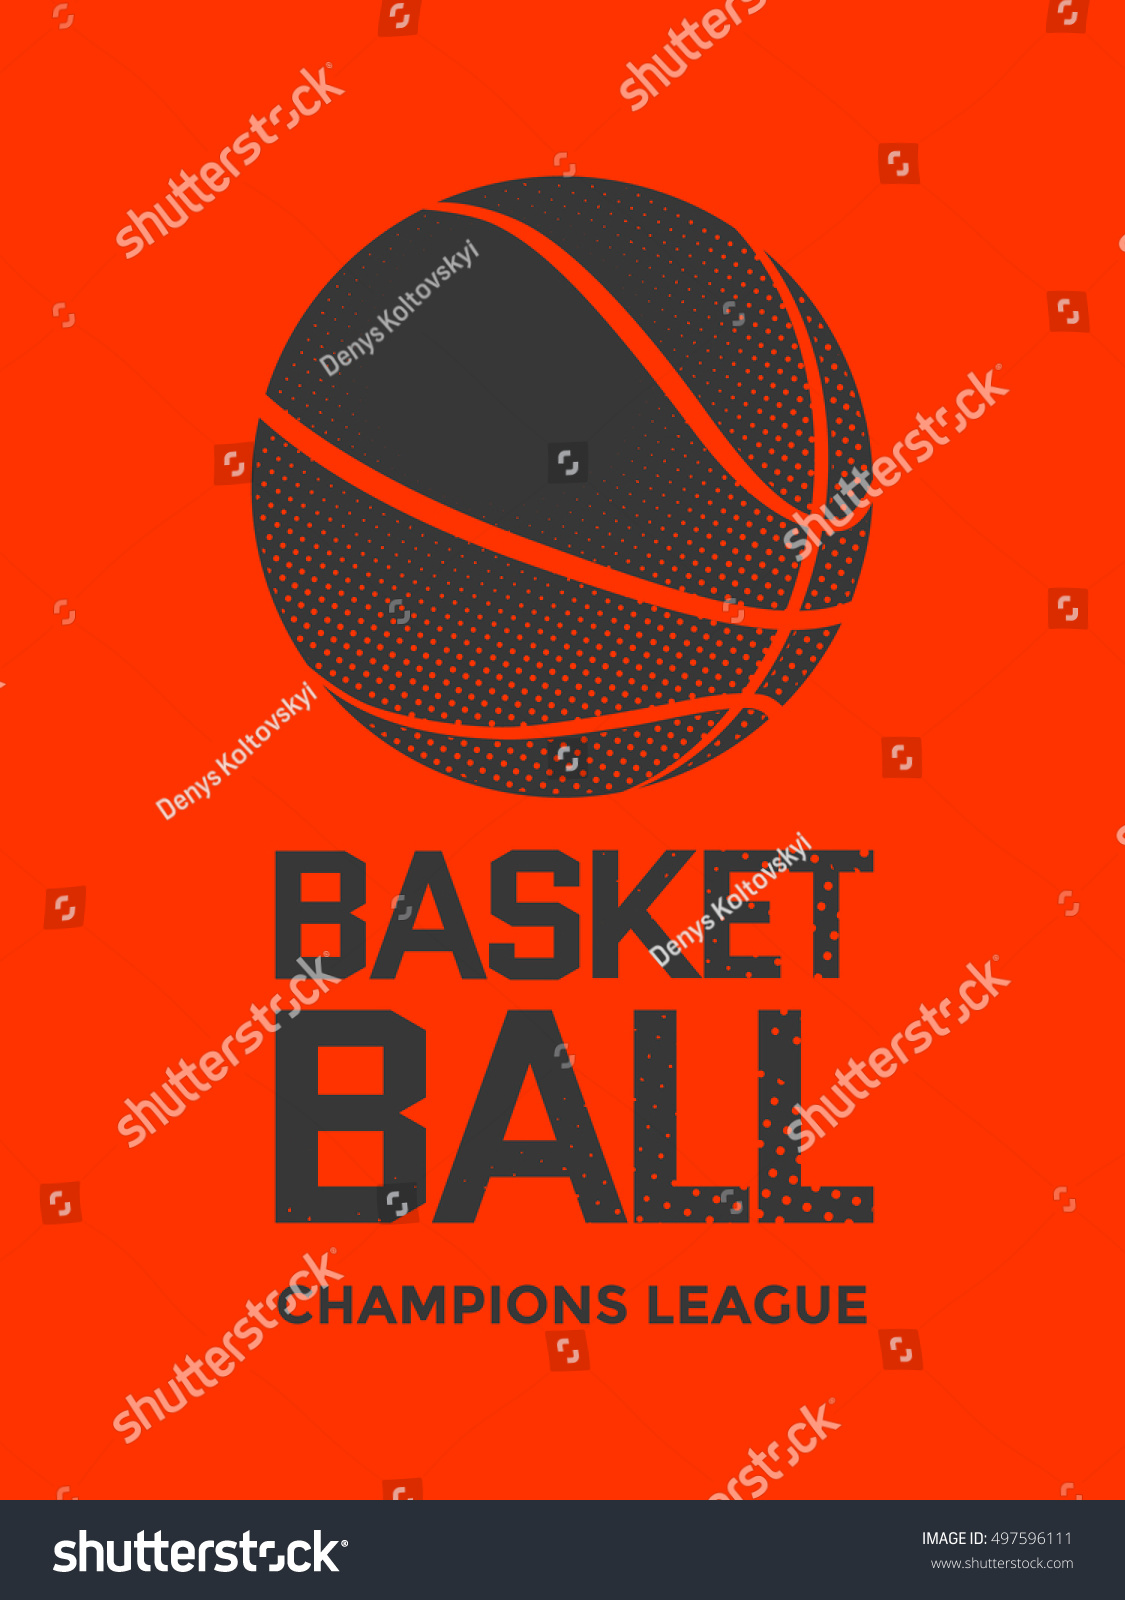 Uncategorized Basketball Pictures To Print basketball champions league poster design print stock vector on t shirt sport illustration